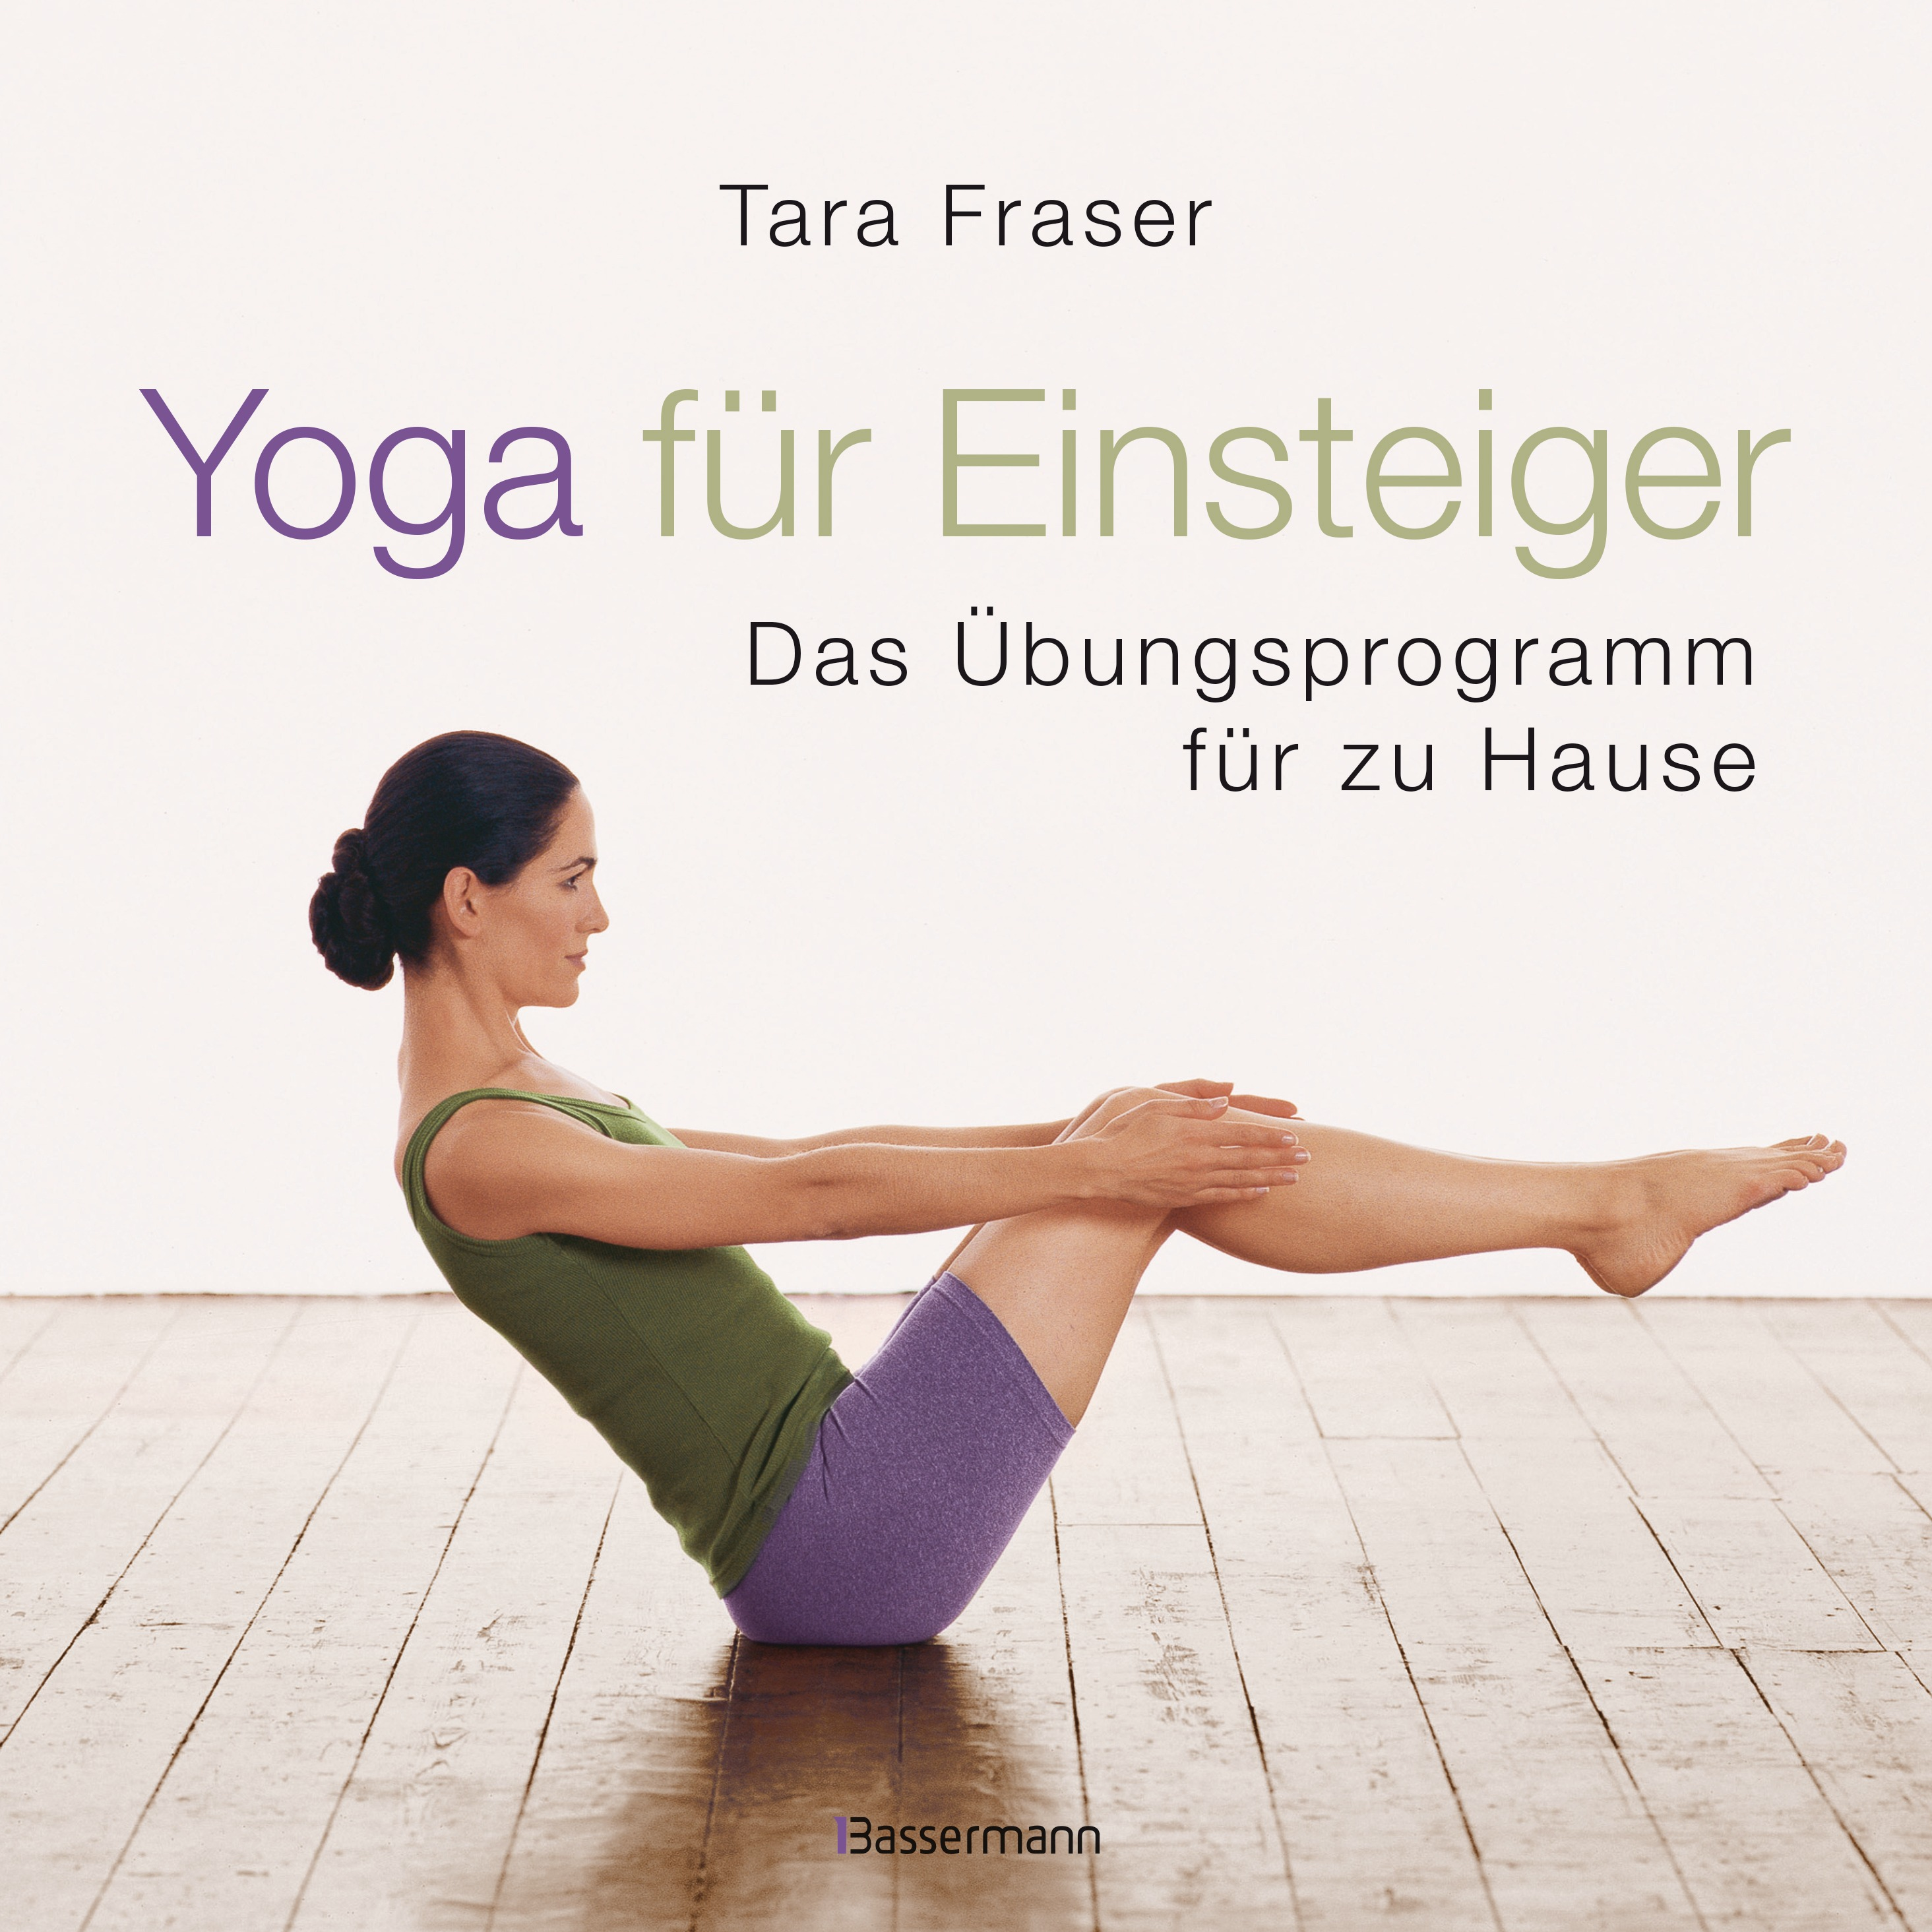 tara fraser yoga f r einsteiger bassermann verlag ebook. Black Bedroom Furniture Sets. Home Design Ideas